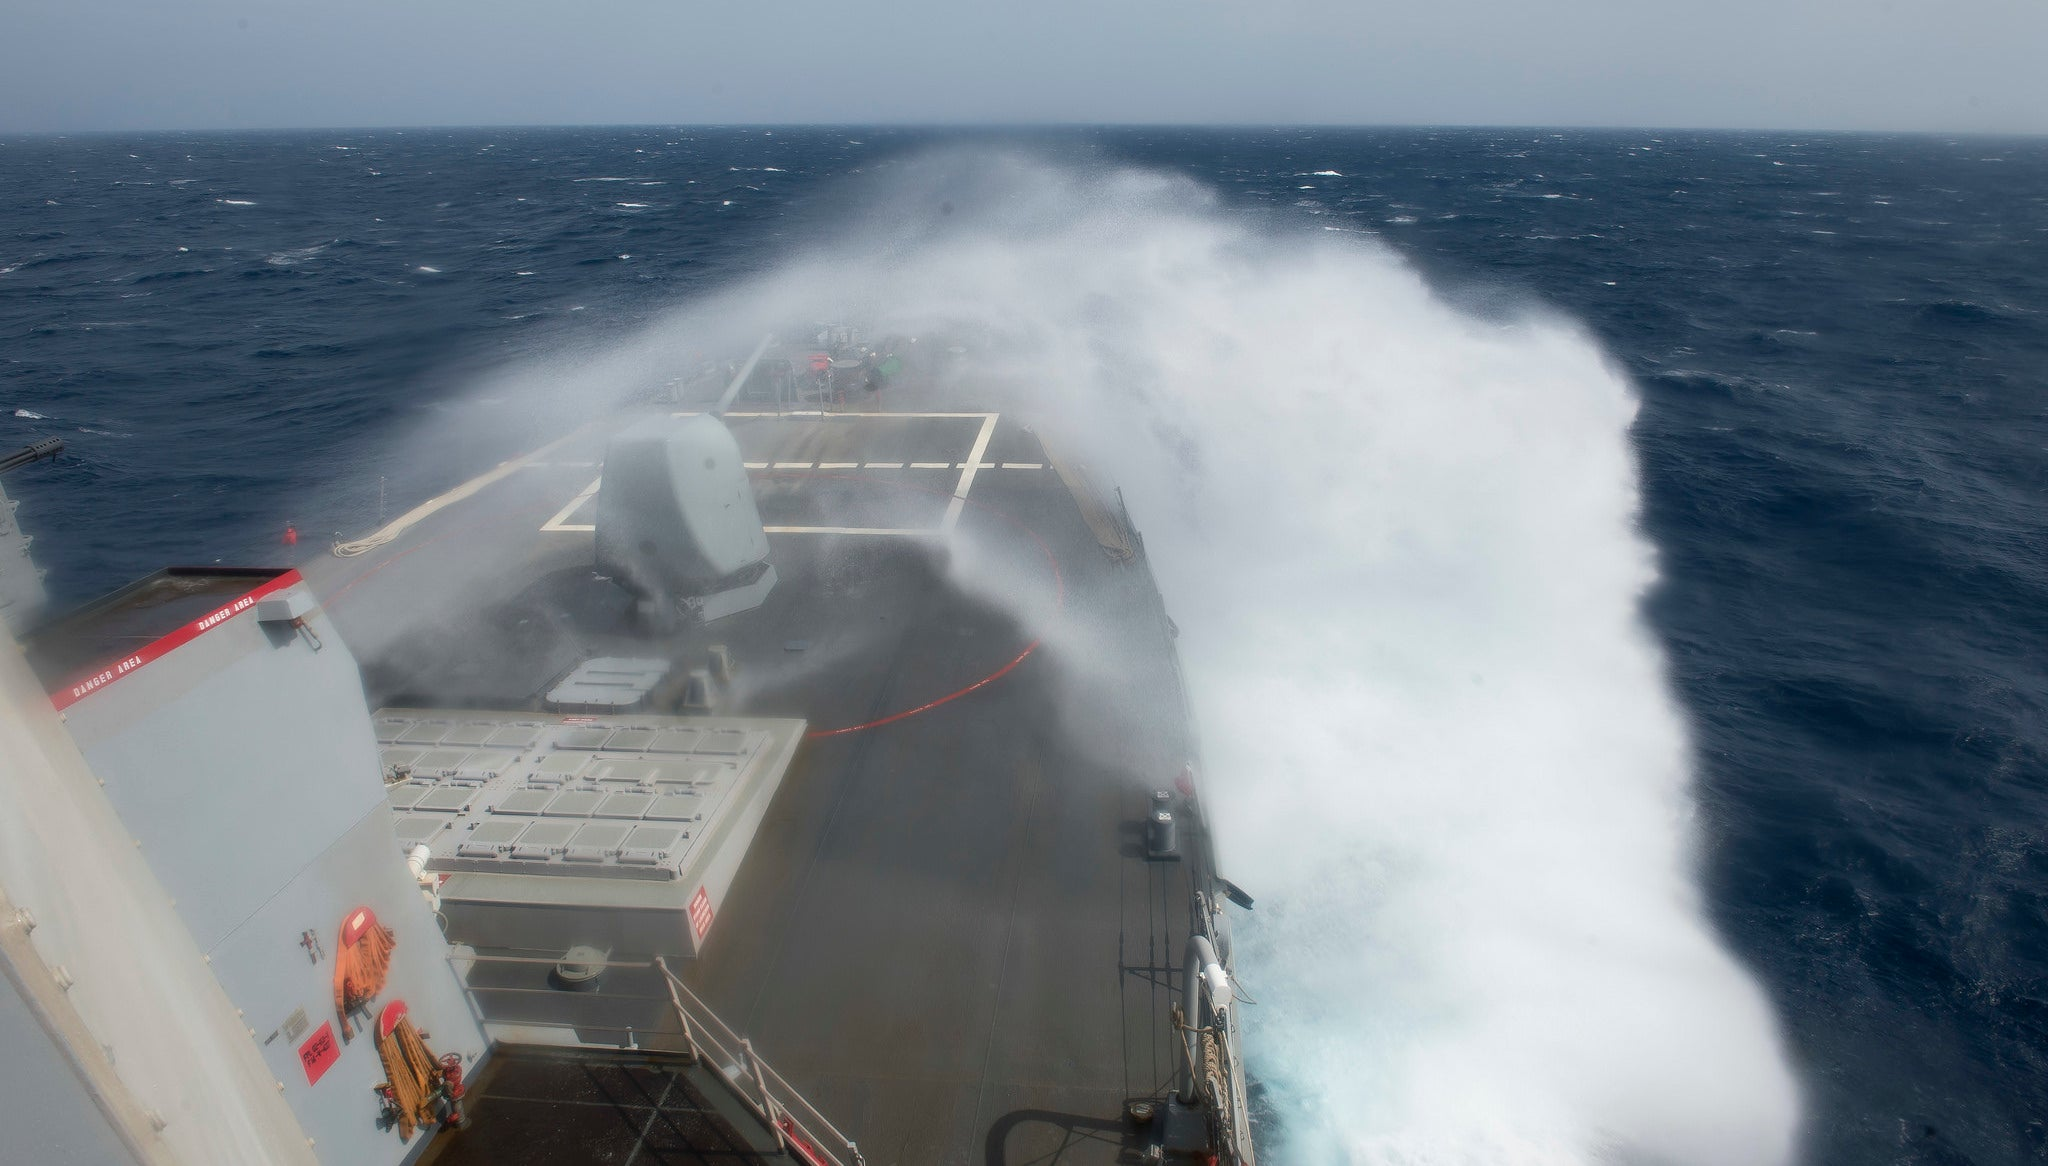 USS Ross guided-missile destroyer looks like it has its own force field